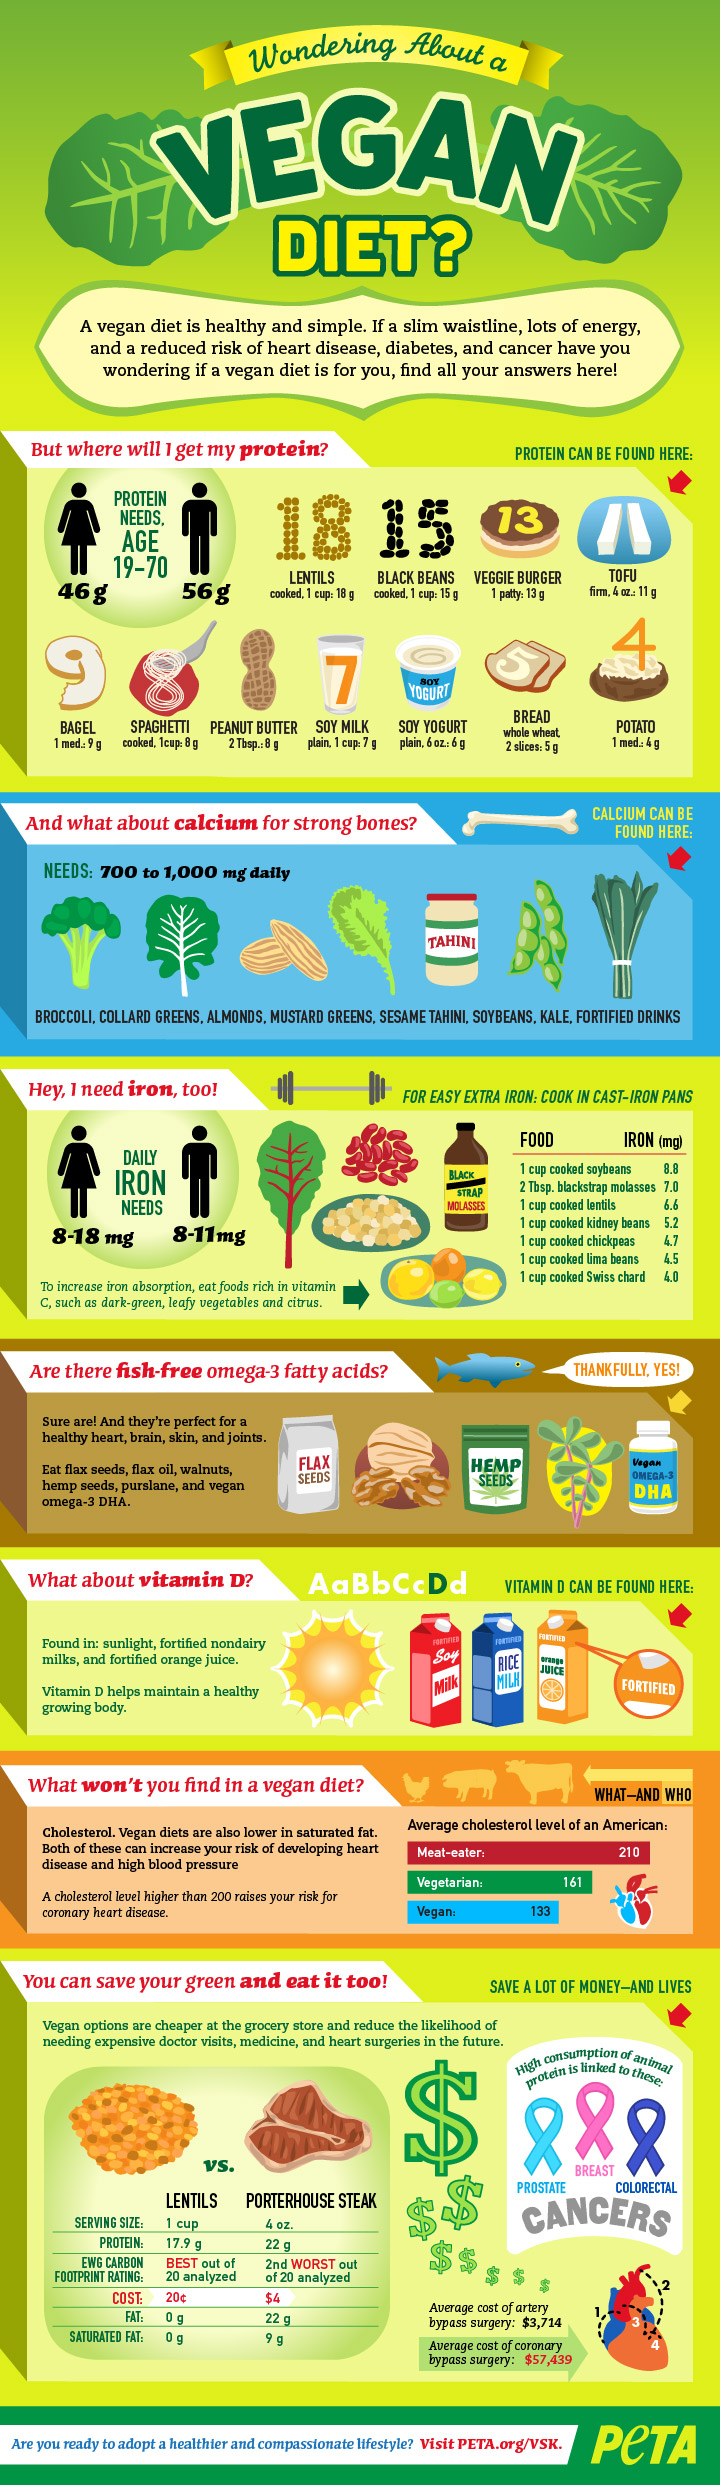 PETA Vegan Diet Infographic